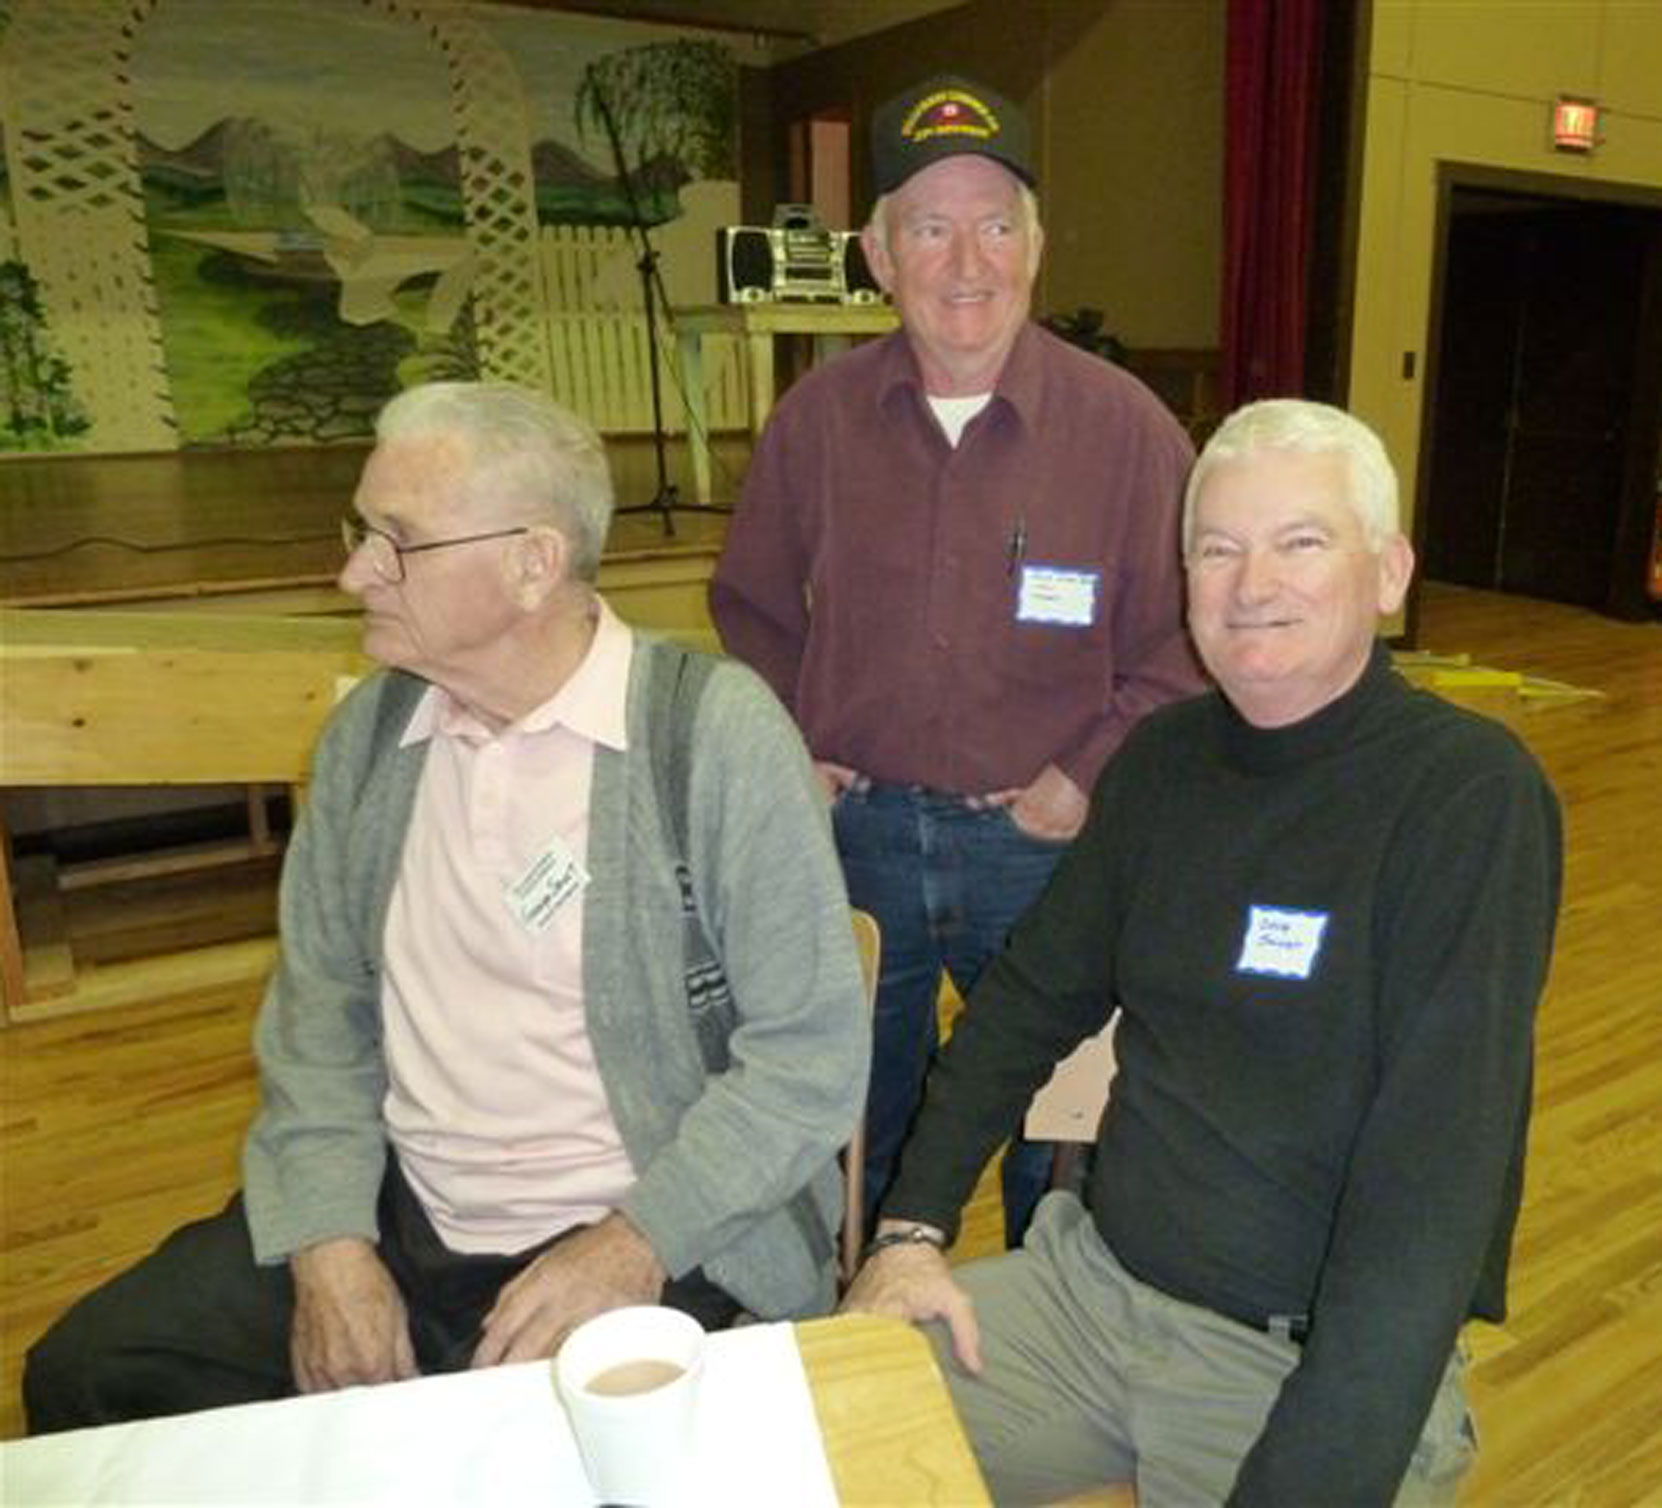 Bob Crawford (standing) at Hillcrest Lumber Company Employees Reunion, 2009. SEated left is George Smart, Woods manager for Hillcrest Lumber Company and Bob's boss when Bob was at Hillcrest. Seated right is George Smart's son Doug Smart. (photo: Cecil Ashley)